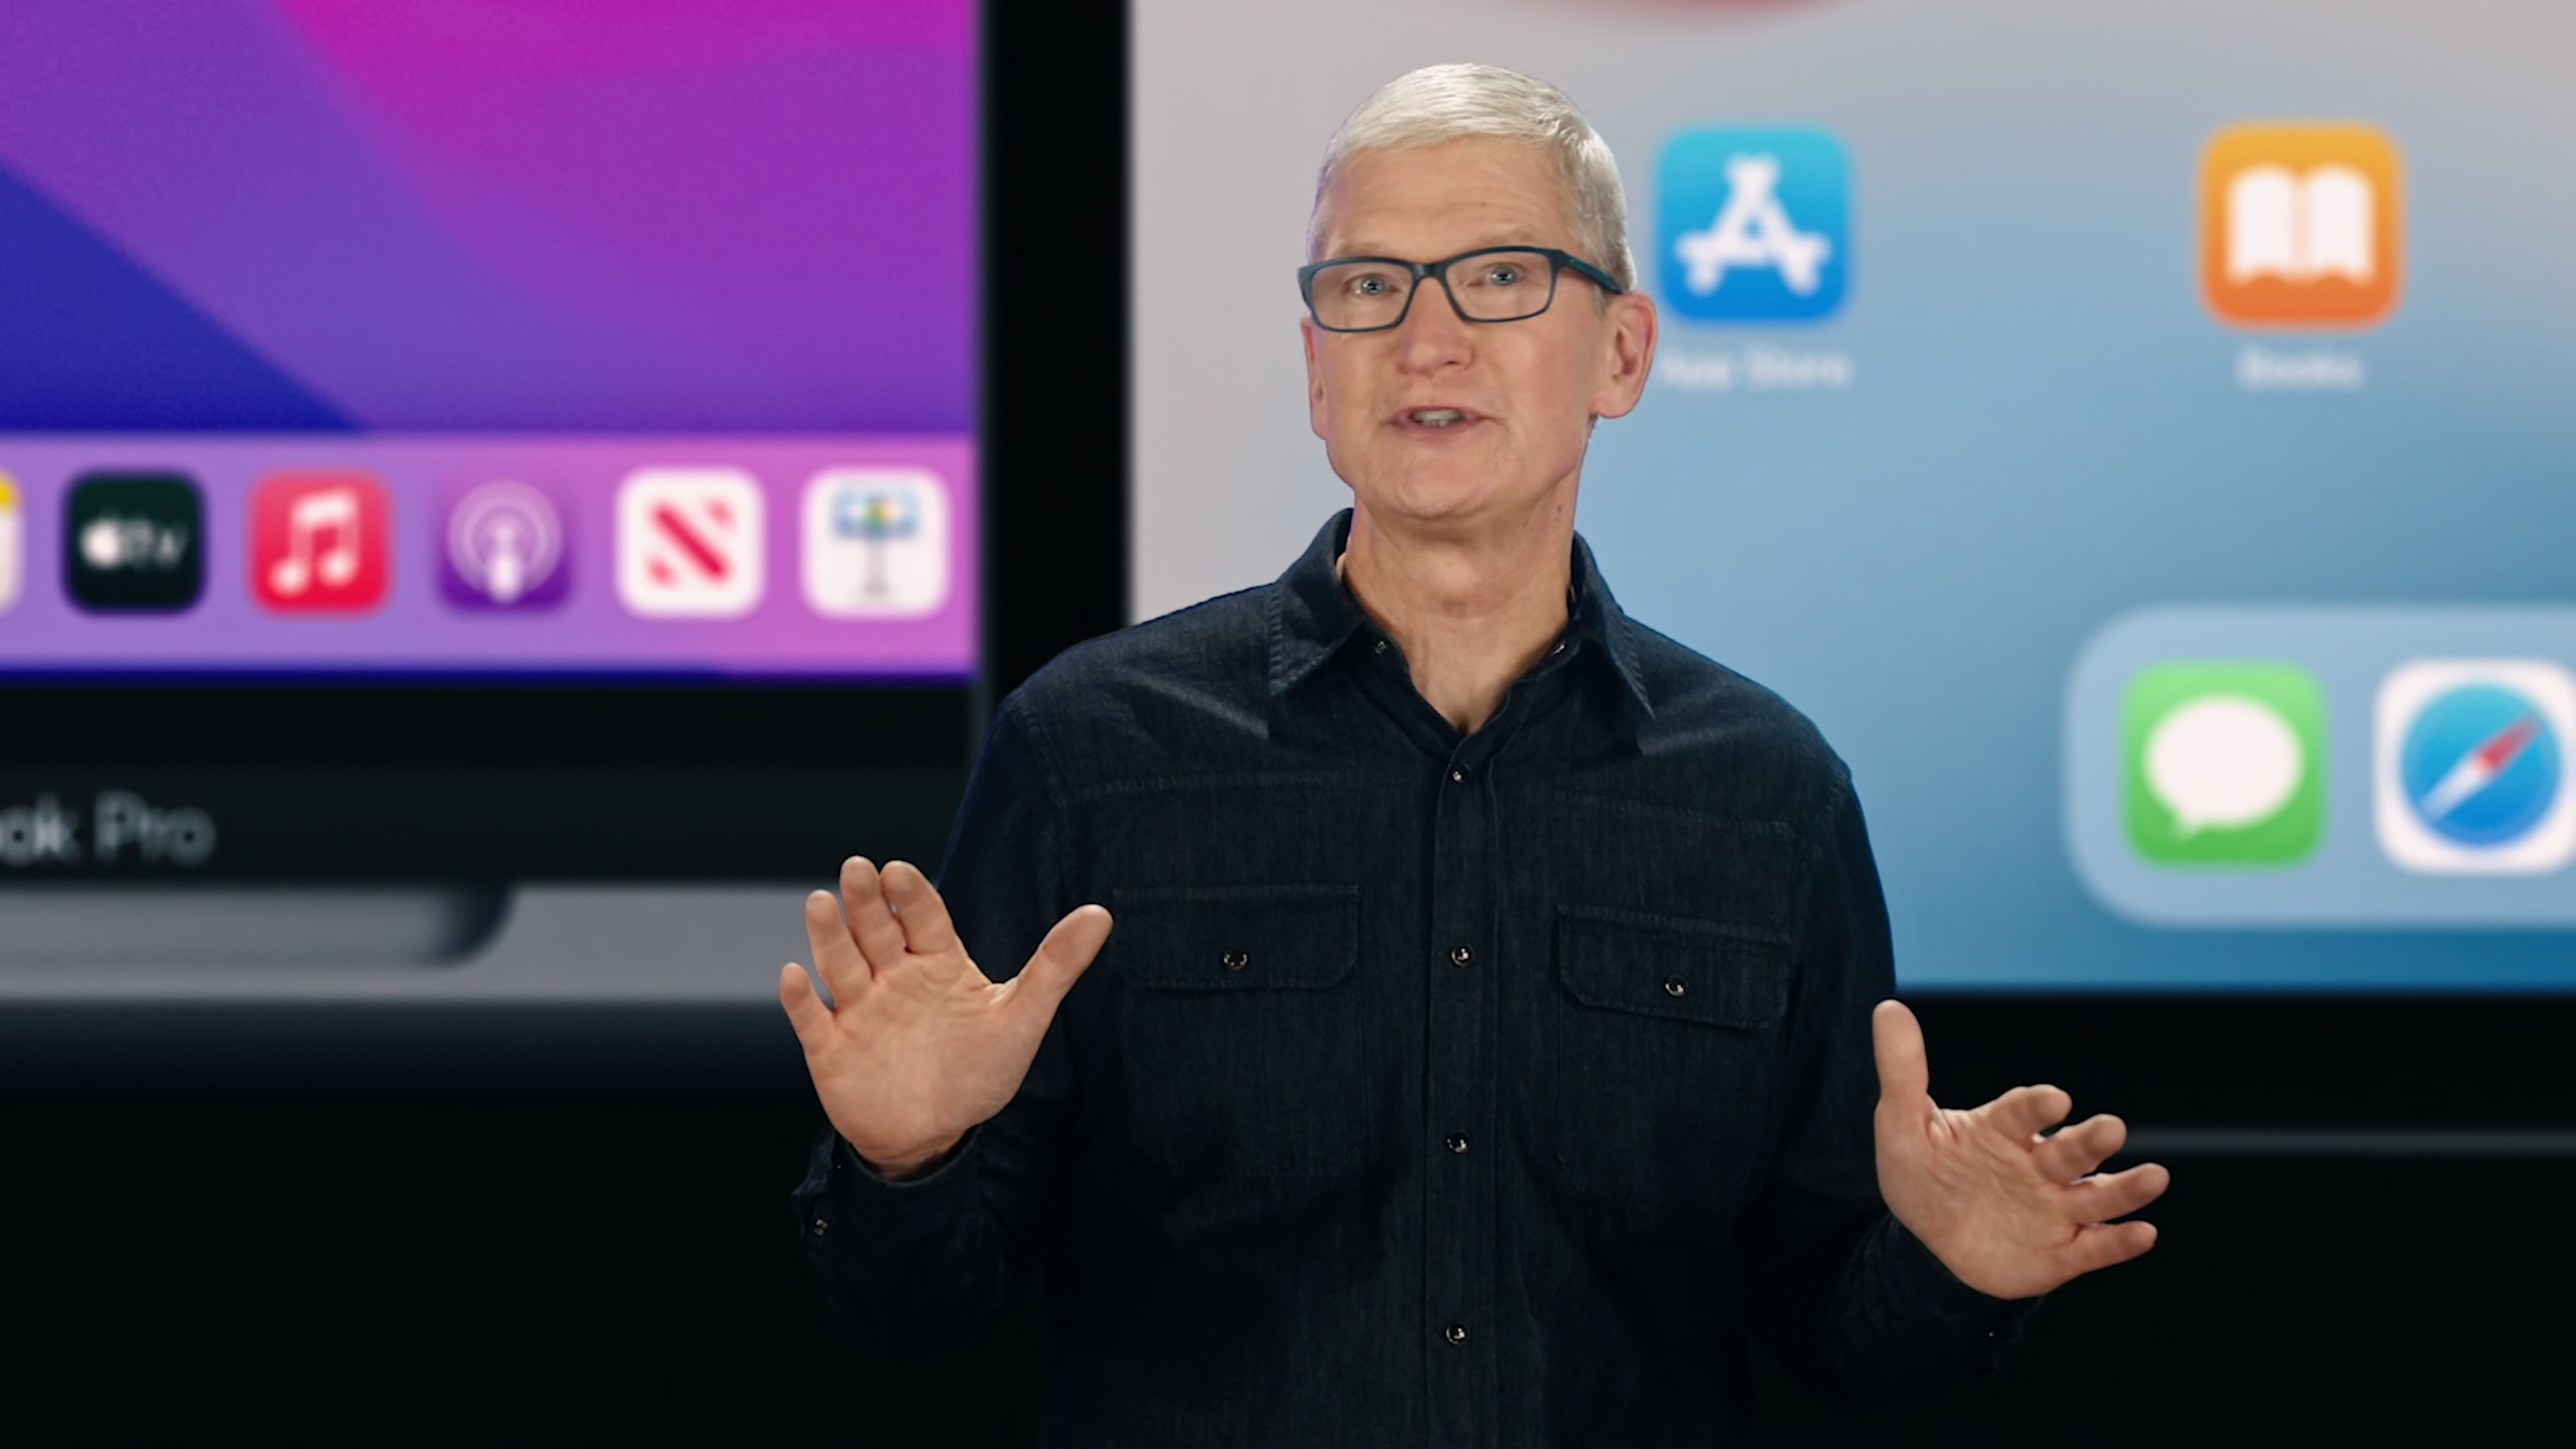 Apple boosts your privacy in 4 news ways on iOS 15: Siri, Mail and more